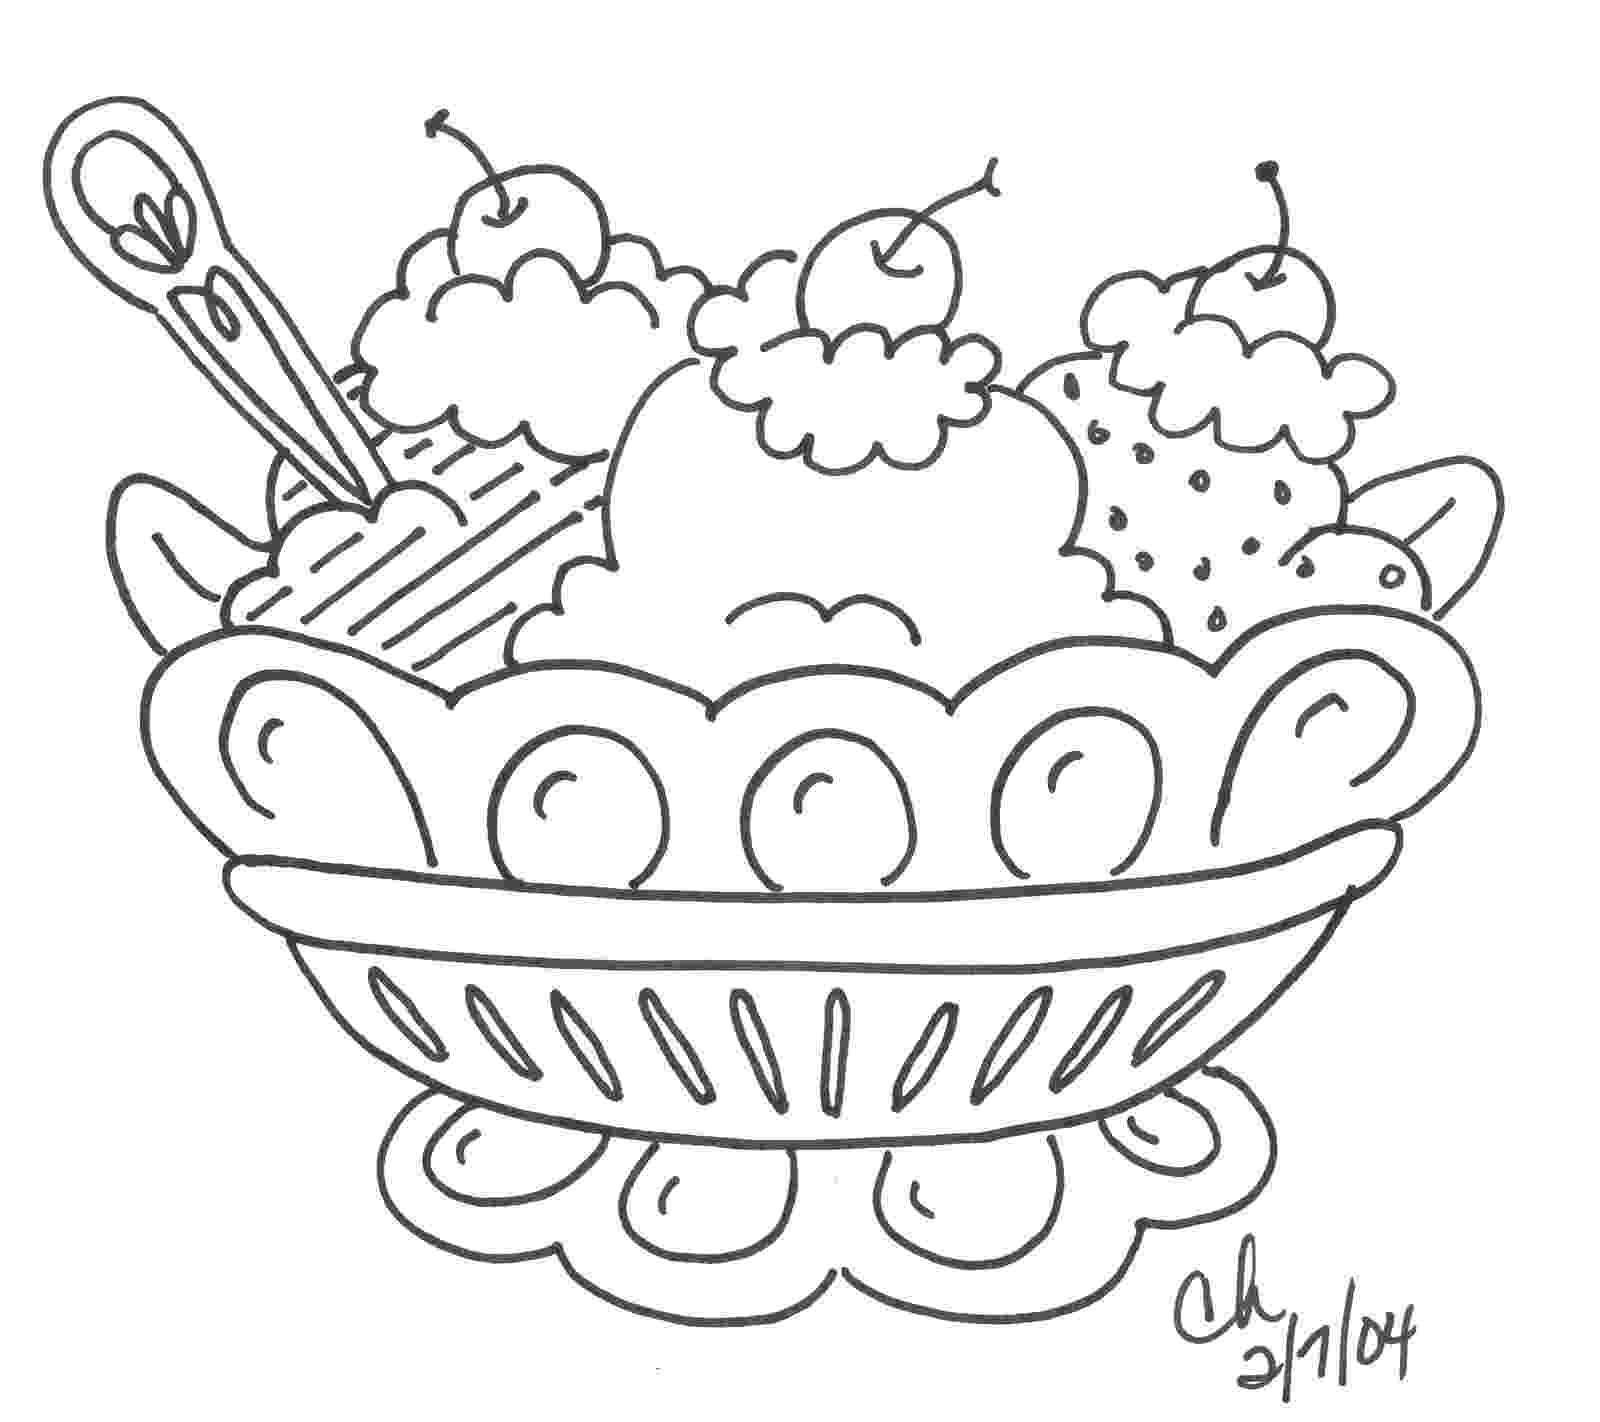 banana split coloring page banana split coloring sheet coloring page create page banana coloring split